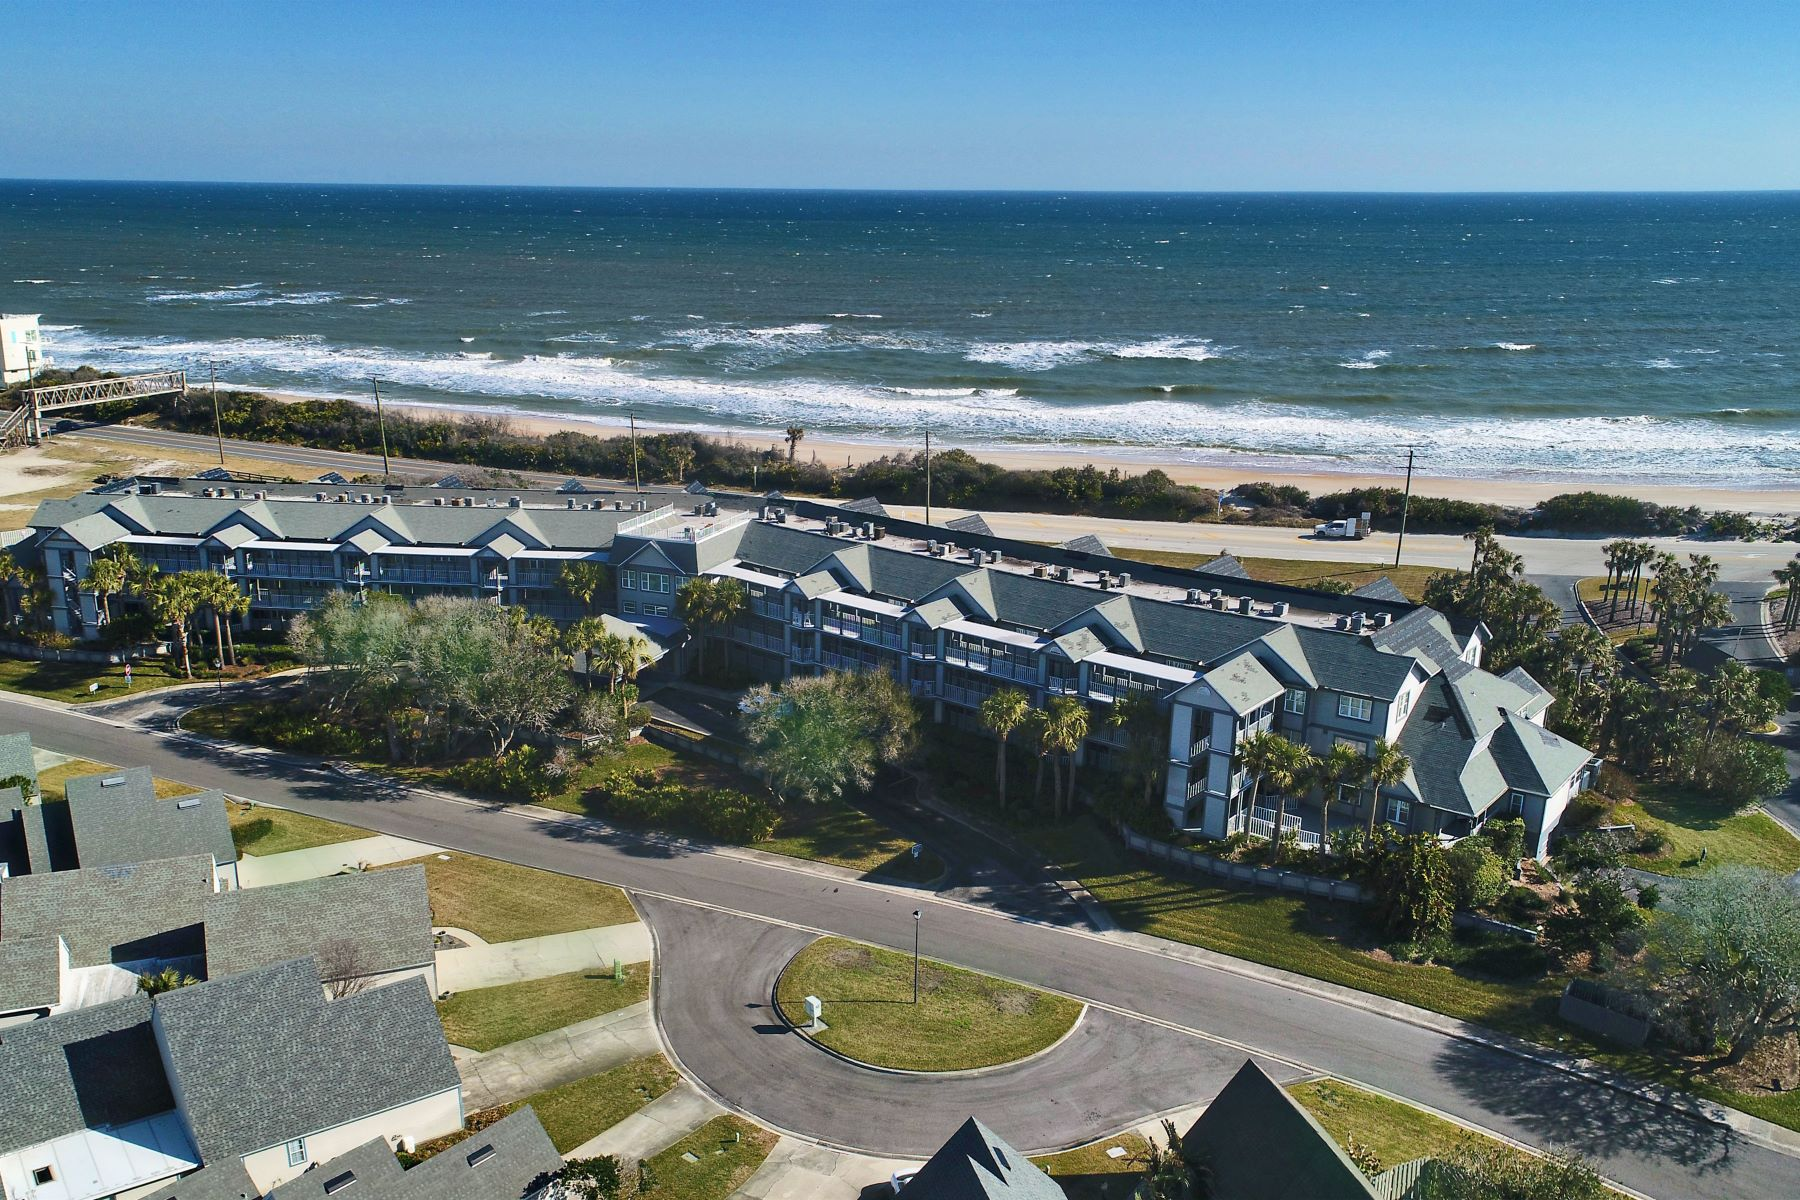 Appartement en copropriété pour l Vente à 110 Ocean Hollow Lane Unit 213 St. Augustine, Fl 110 Ocean Hollow Lane Unit 213 St. Augustine, Florida 32084 États-Unis